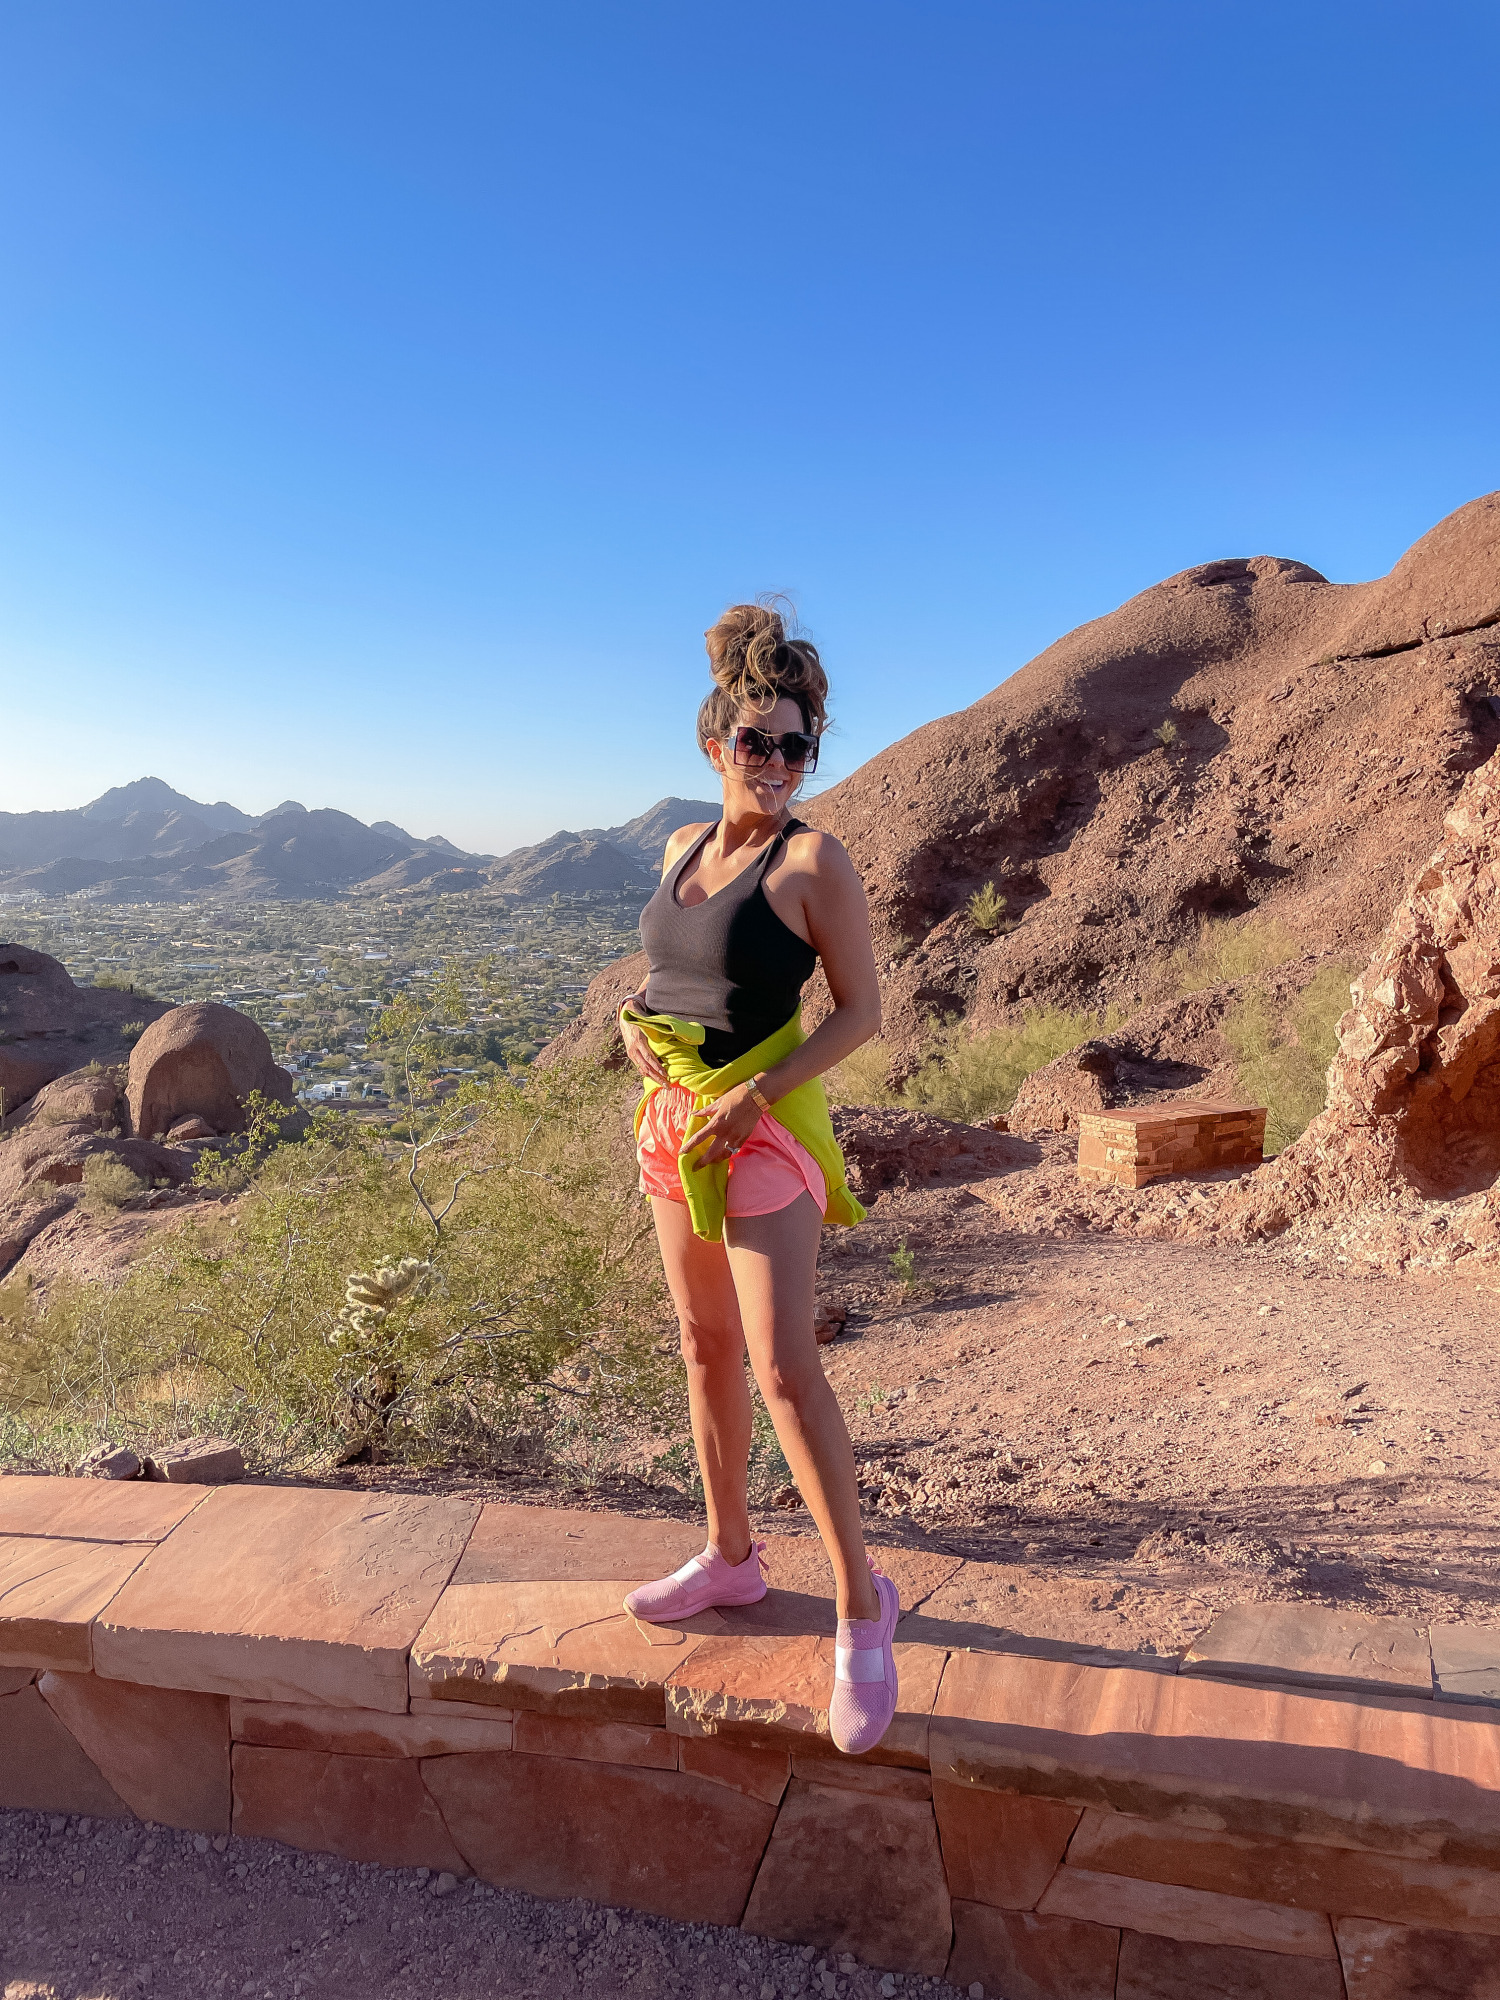 free people shorts, best workout gear spring 2021, camelback mountain, alo yoga top, emily gemma12 |Hiking Outfits by popular US fashion blog, The Sweetest Thing: image of Emily Gemma wearing a Alo yoga top, Nike half zipper pullover sweatshirt, Free People shorts, APL sneakers and Amazon sunglasses while standing out a low rock wall.